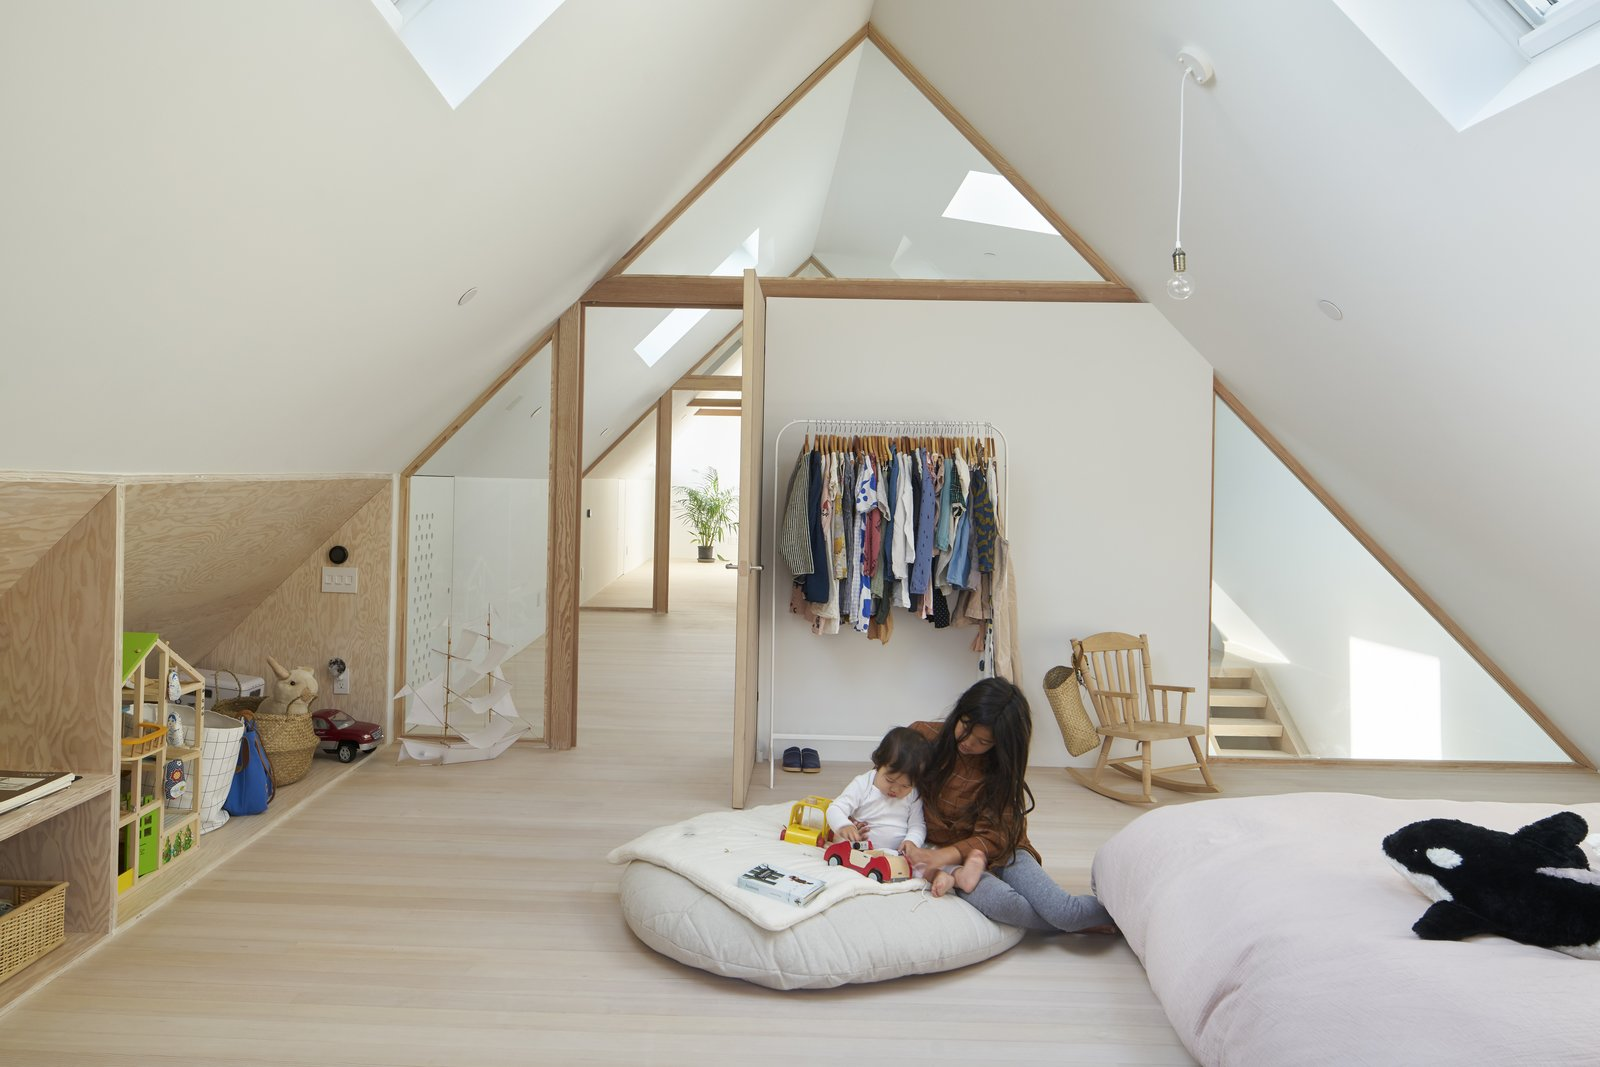 Kids, Pre-Teen, Bedroom, Rockers, Storage, Light Hardwood, Bed, Chair, Toddler, and Neutral Glazing allows visual transparency between spaces, as well as the passage of light from one end to the other, creating a bright, light-filled attic space.    Kids Chair Storage Photos from 15th Street